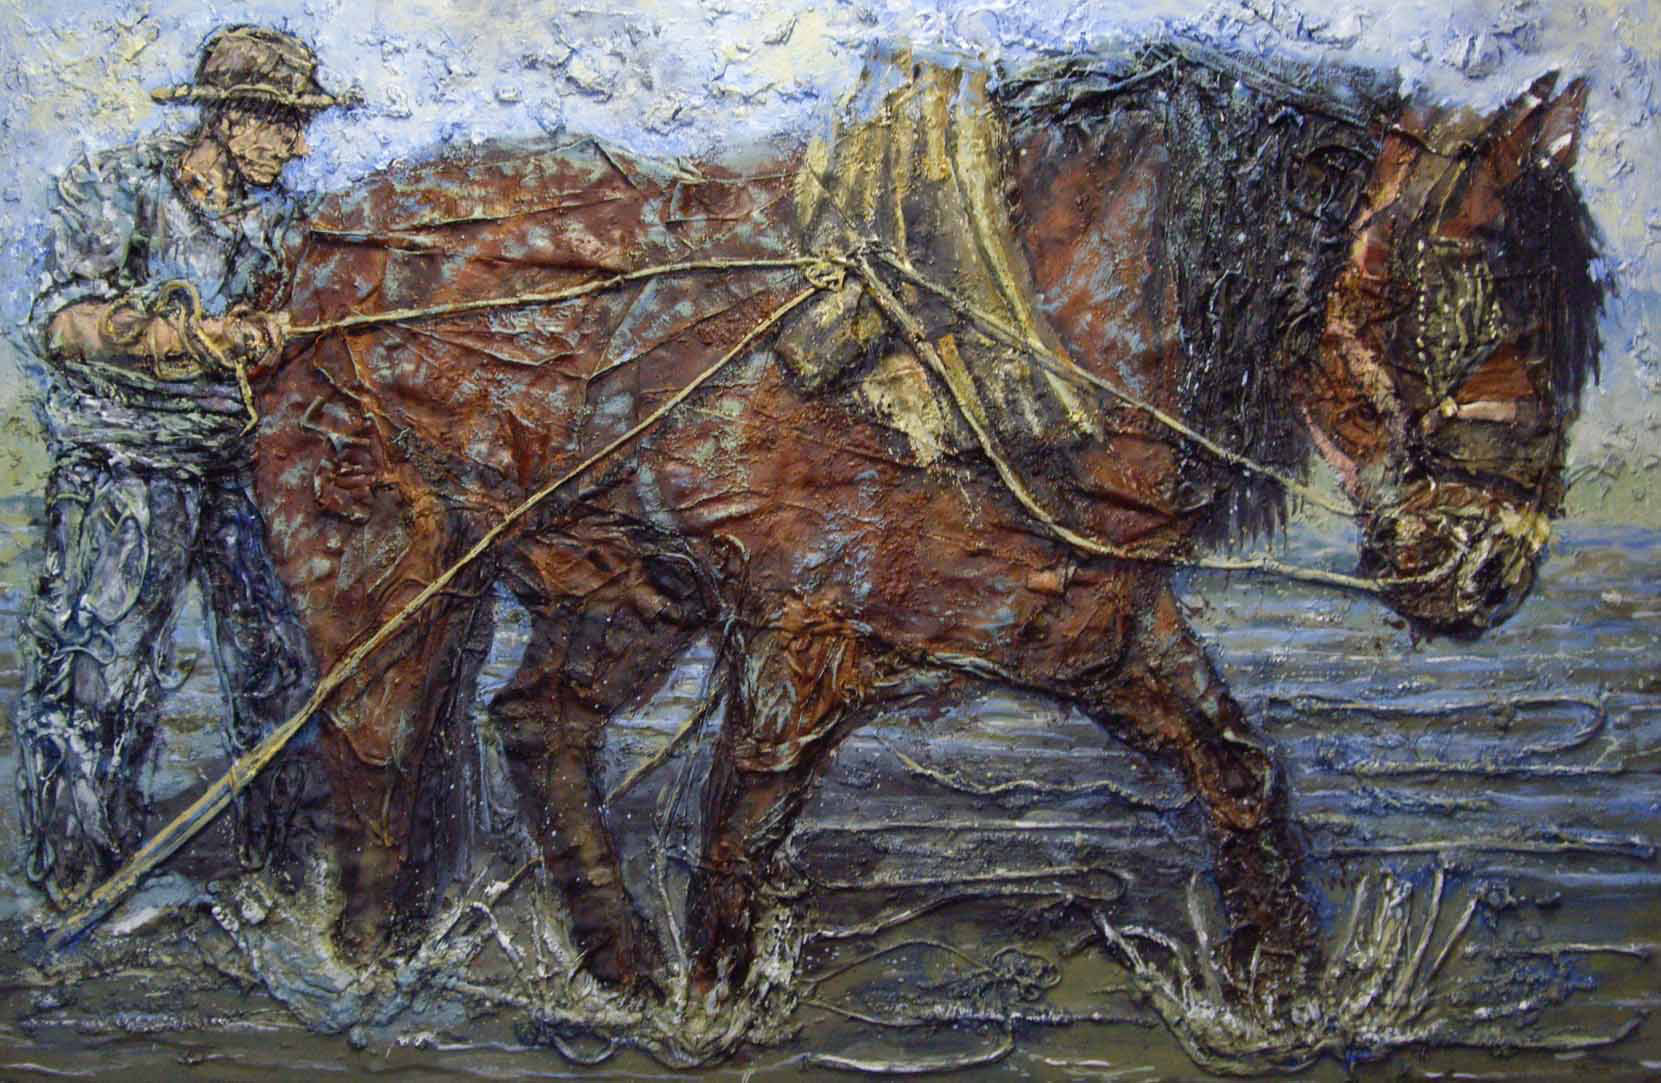 Man and horse, plowing the sea